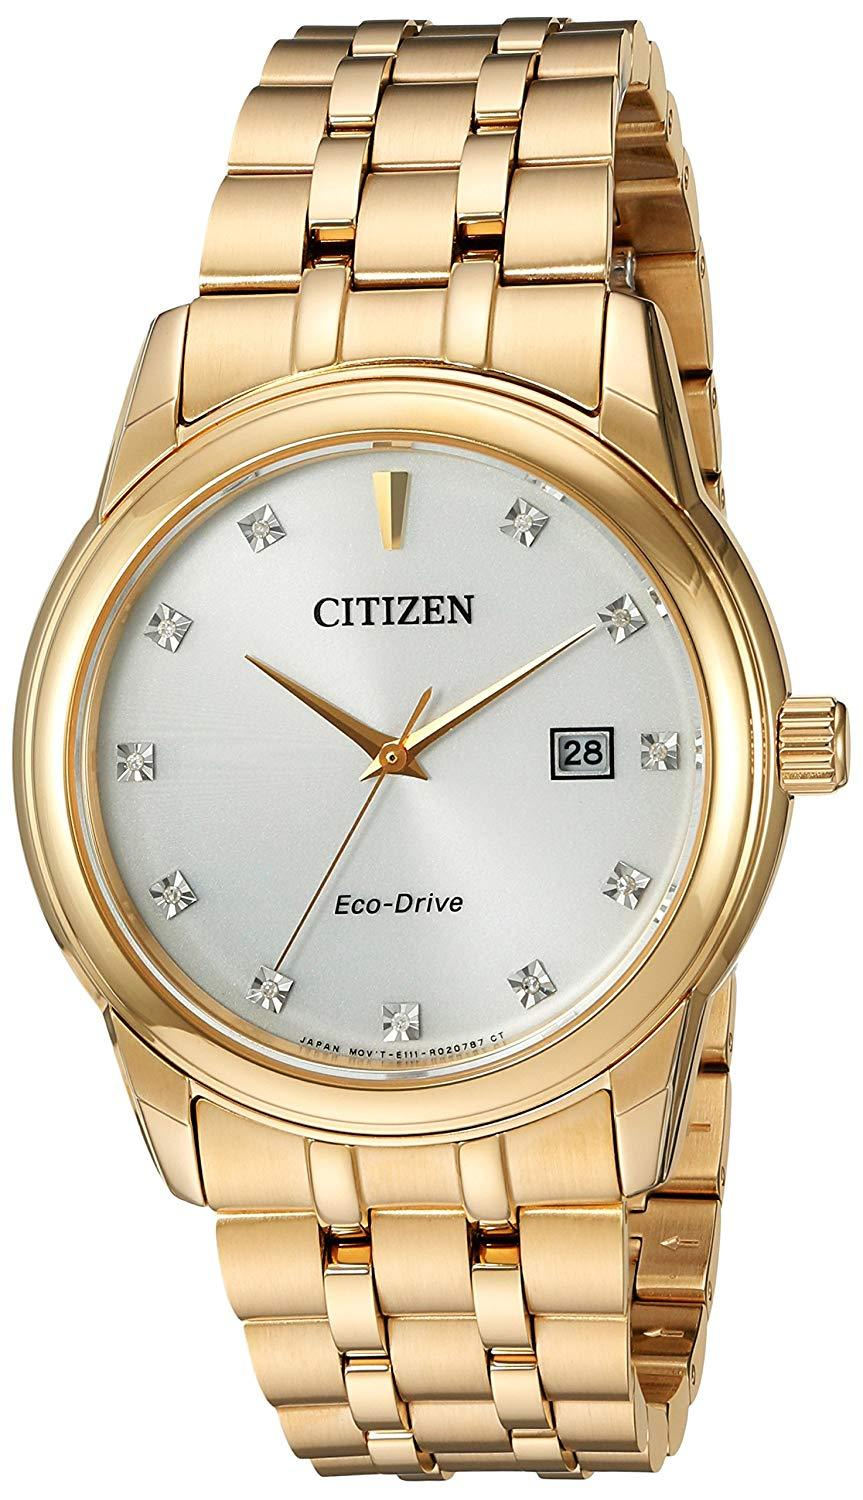 Citizen Men's Eco-Drive Stainless Steel GoldTone Diamond Accent Watch BM7342-50A